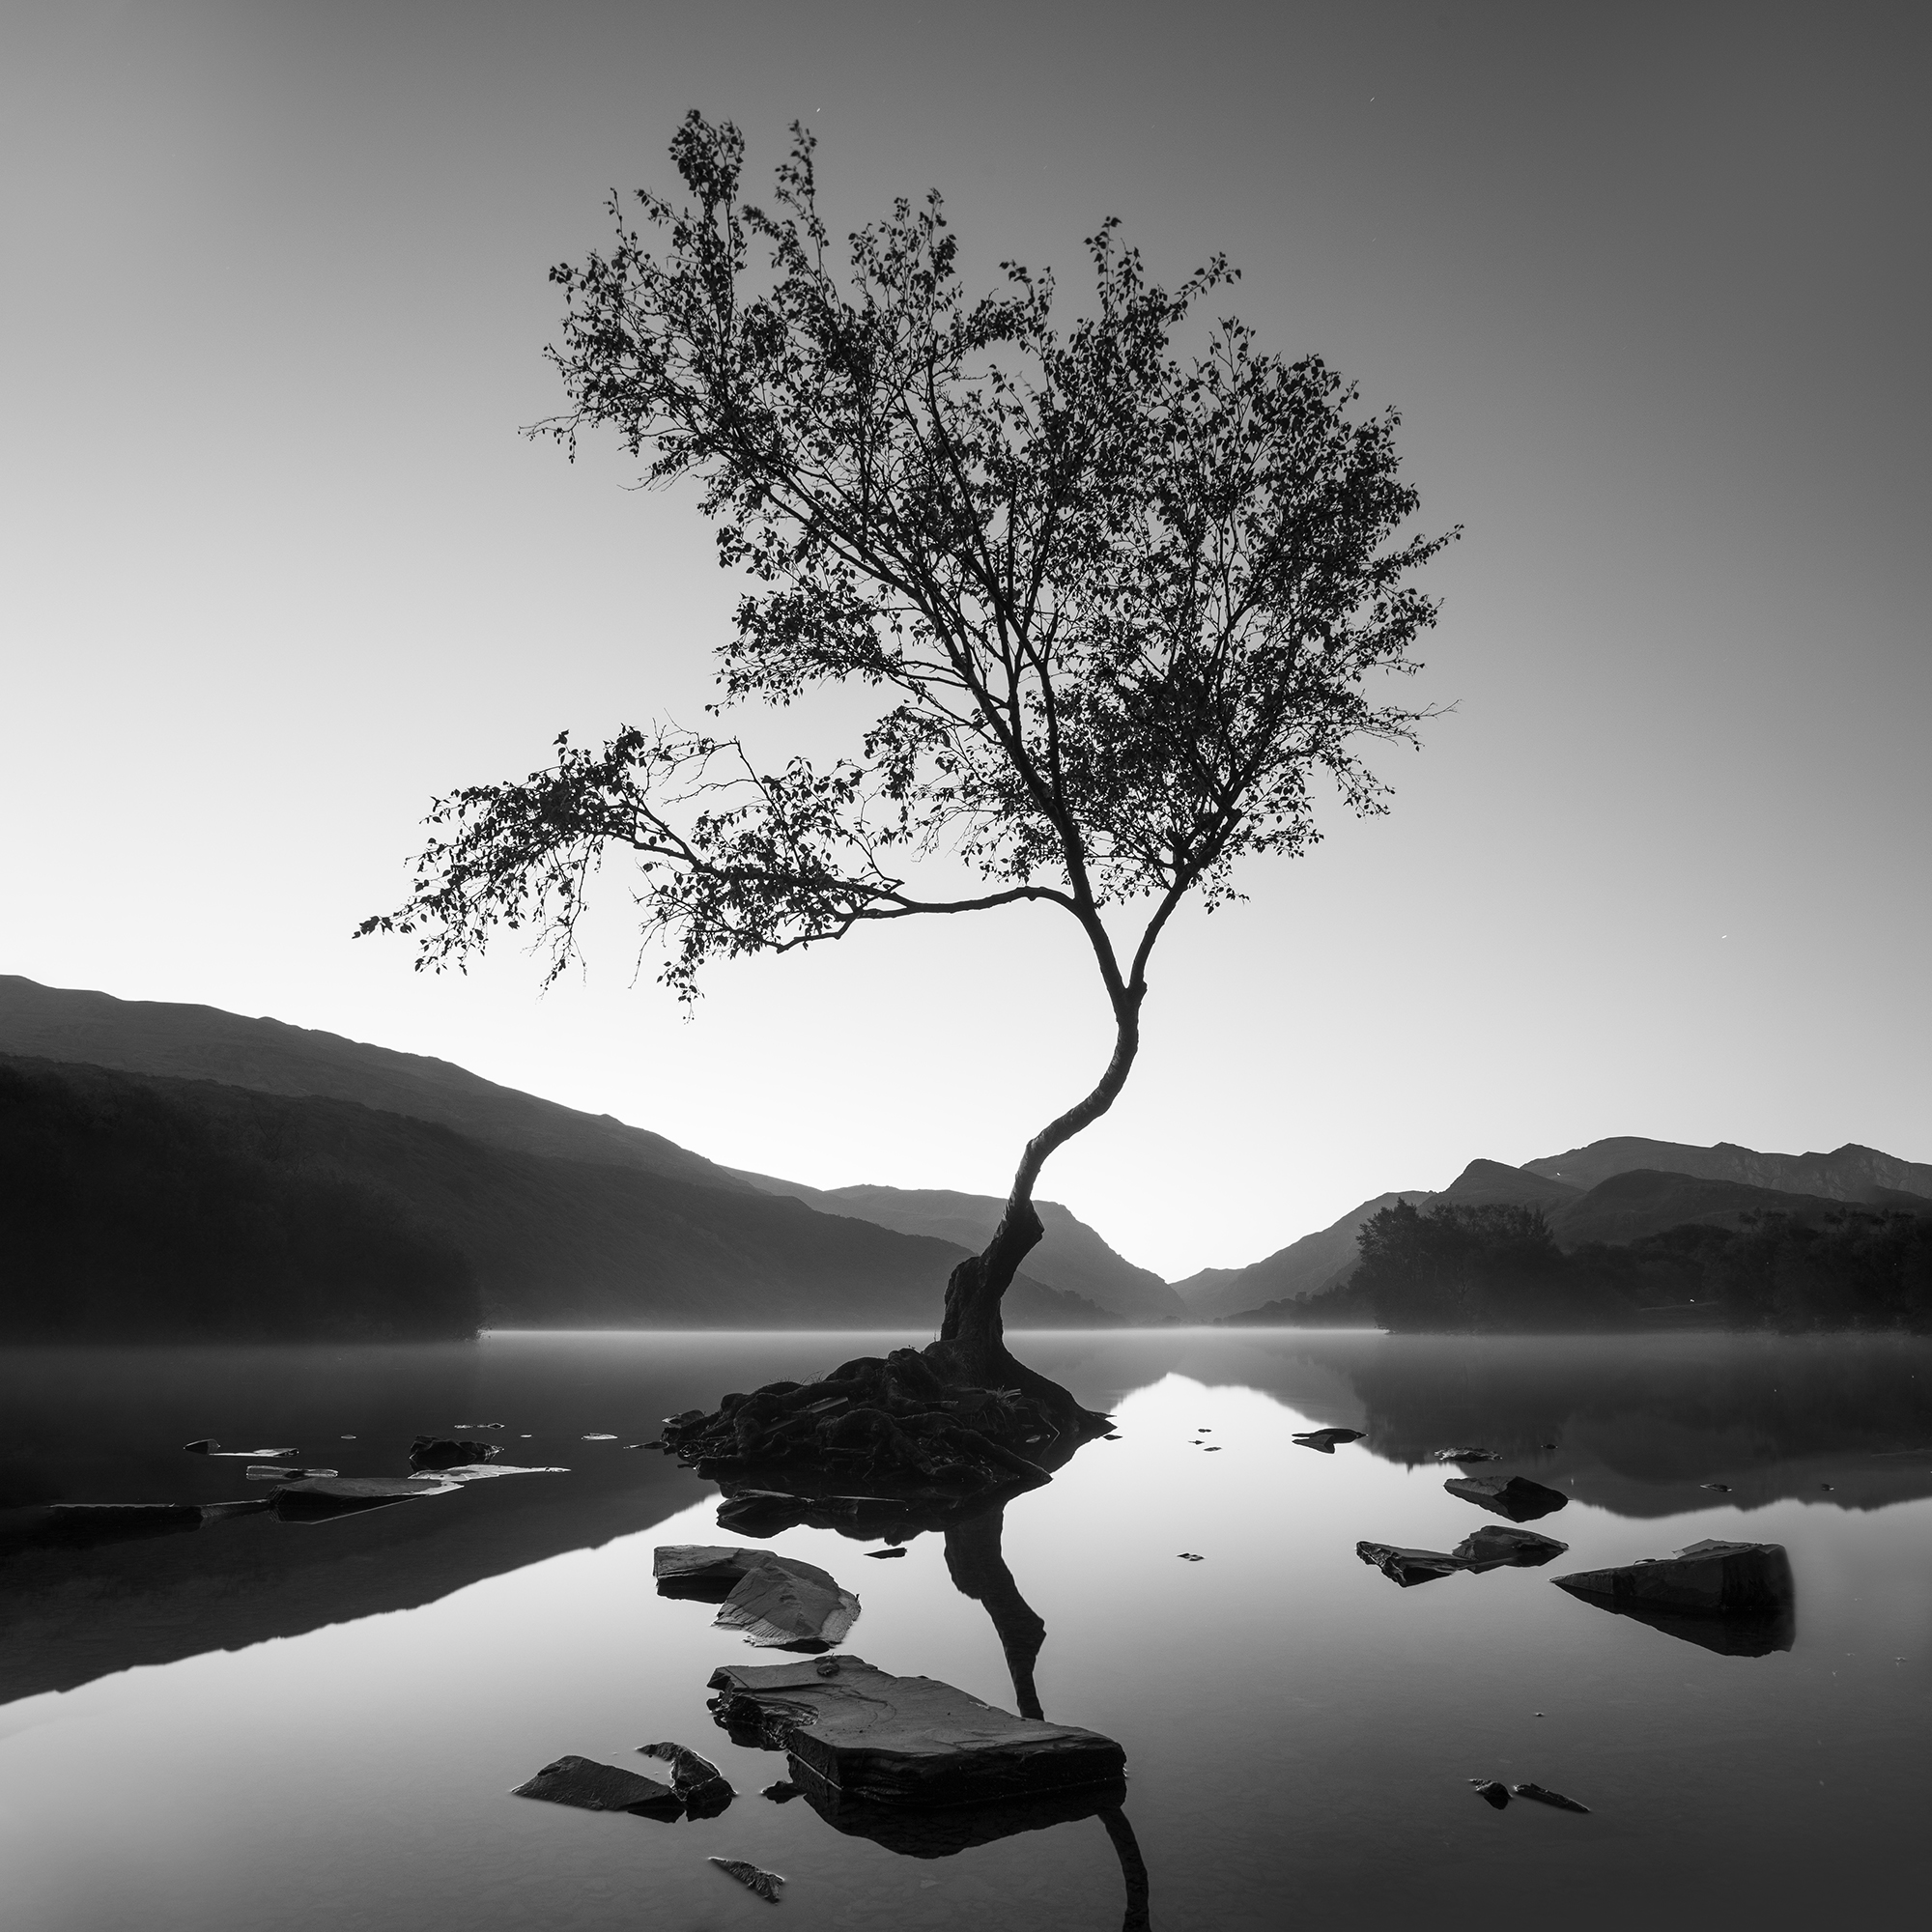 <h5>The Tree at Llyn Padarn </h5><p>Monochrome print, by Sophia Spurgin																																																																				</p>